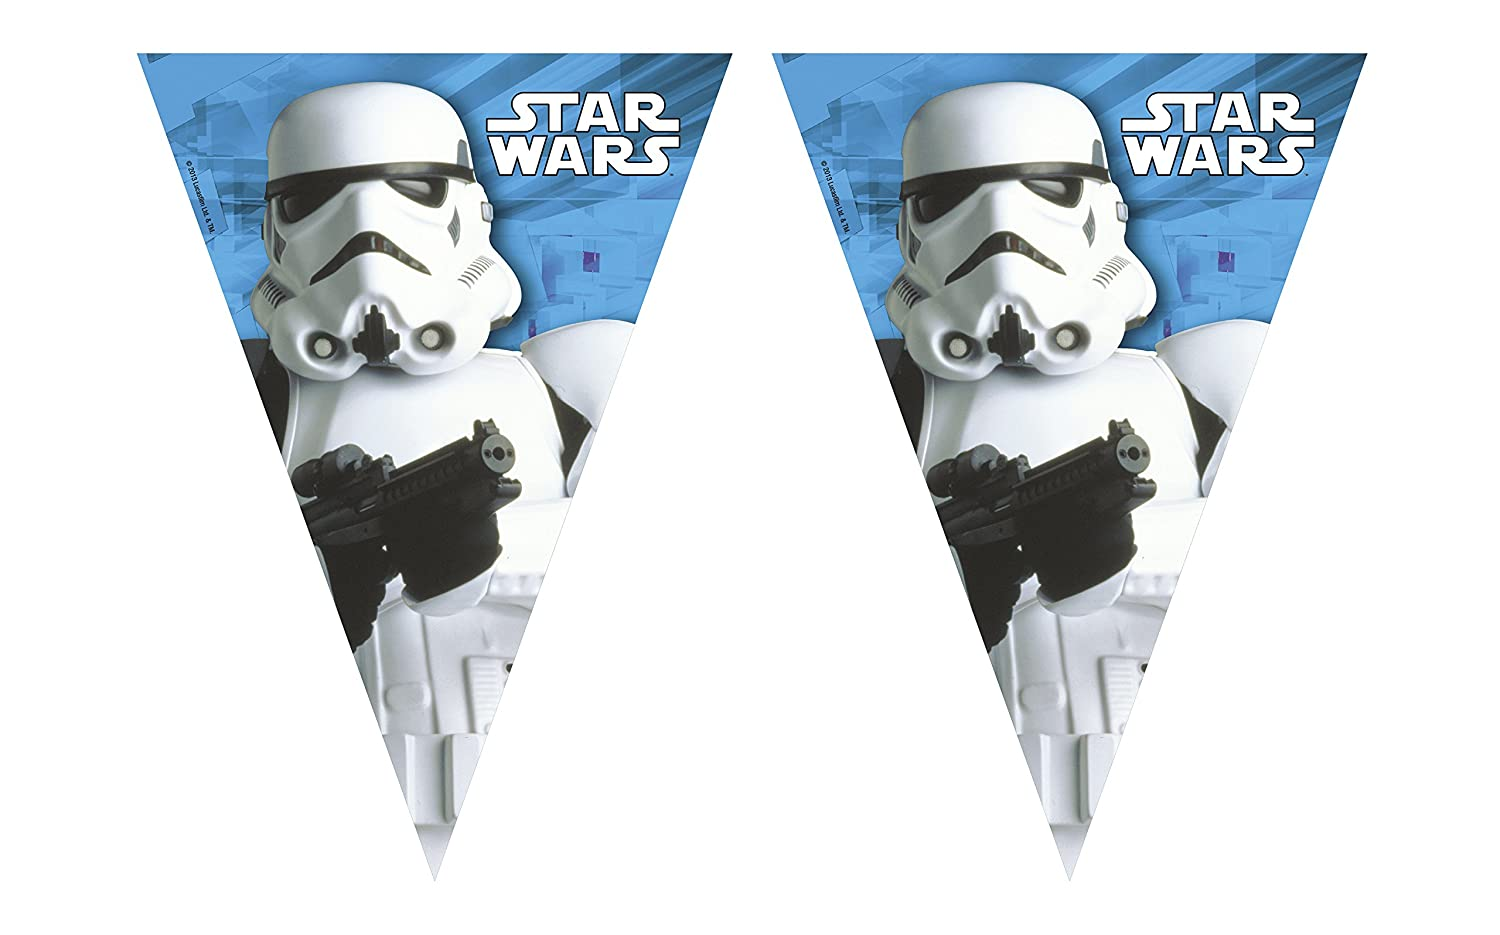 Star Wars Unique Party 71981 - 2.3m Bunting Banner